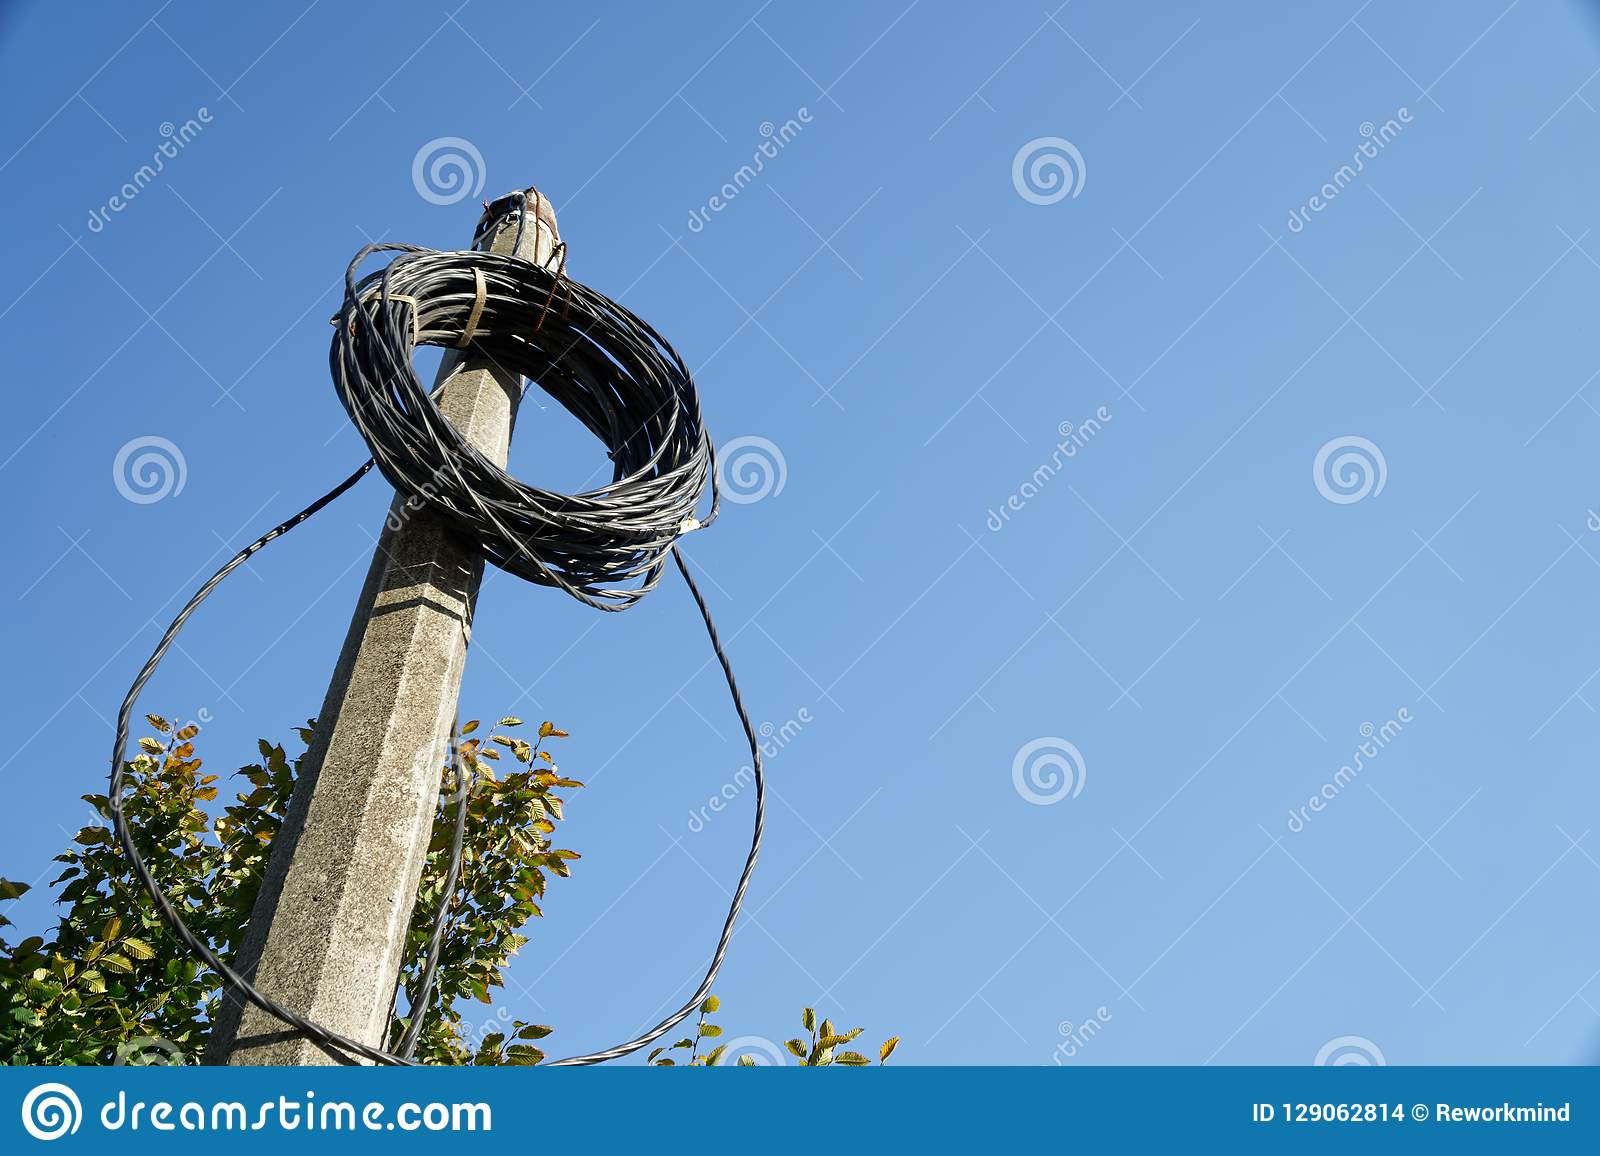 Electric wires rolled on post, bind cable